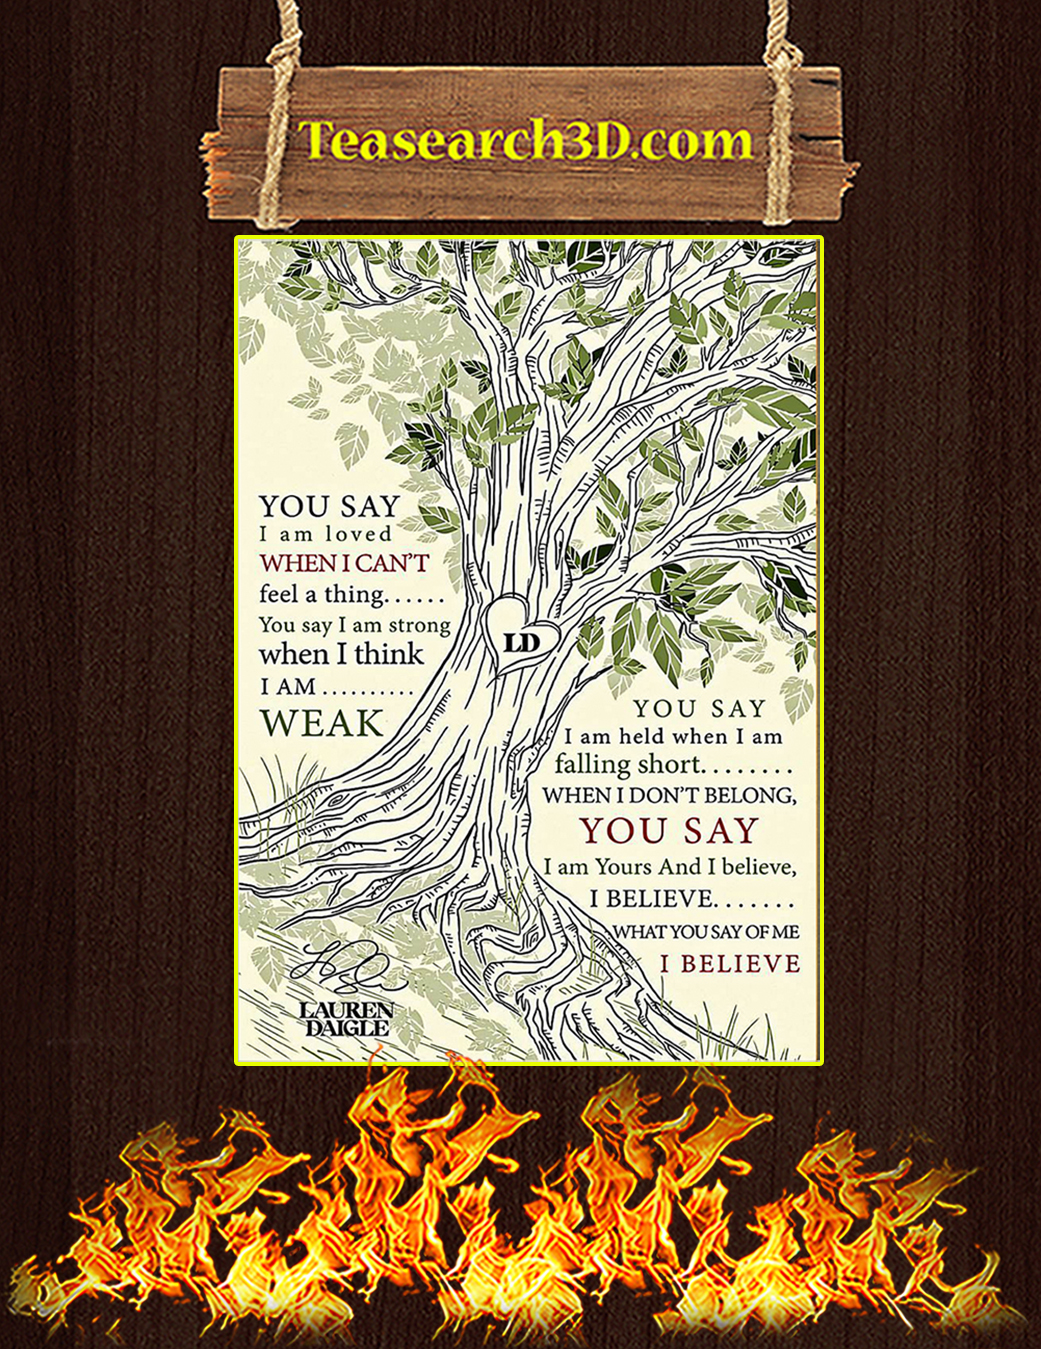 You Say I'm Loved When I Can't Feel A Thing Tree Poster A1You Say I'm Loved When I Can't Feel A Thing Tree Poster A1